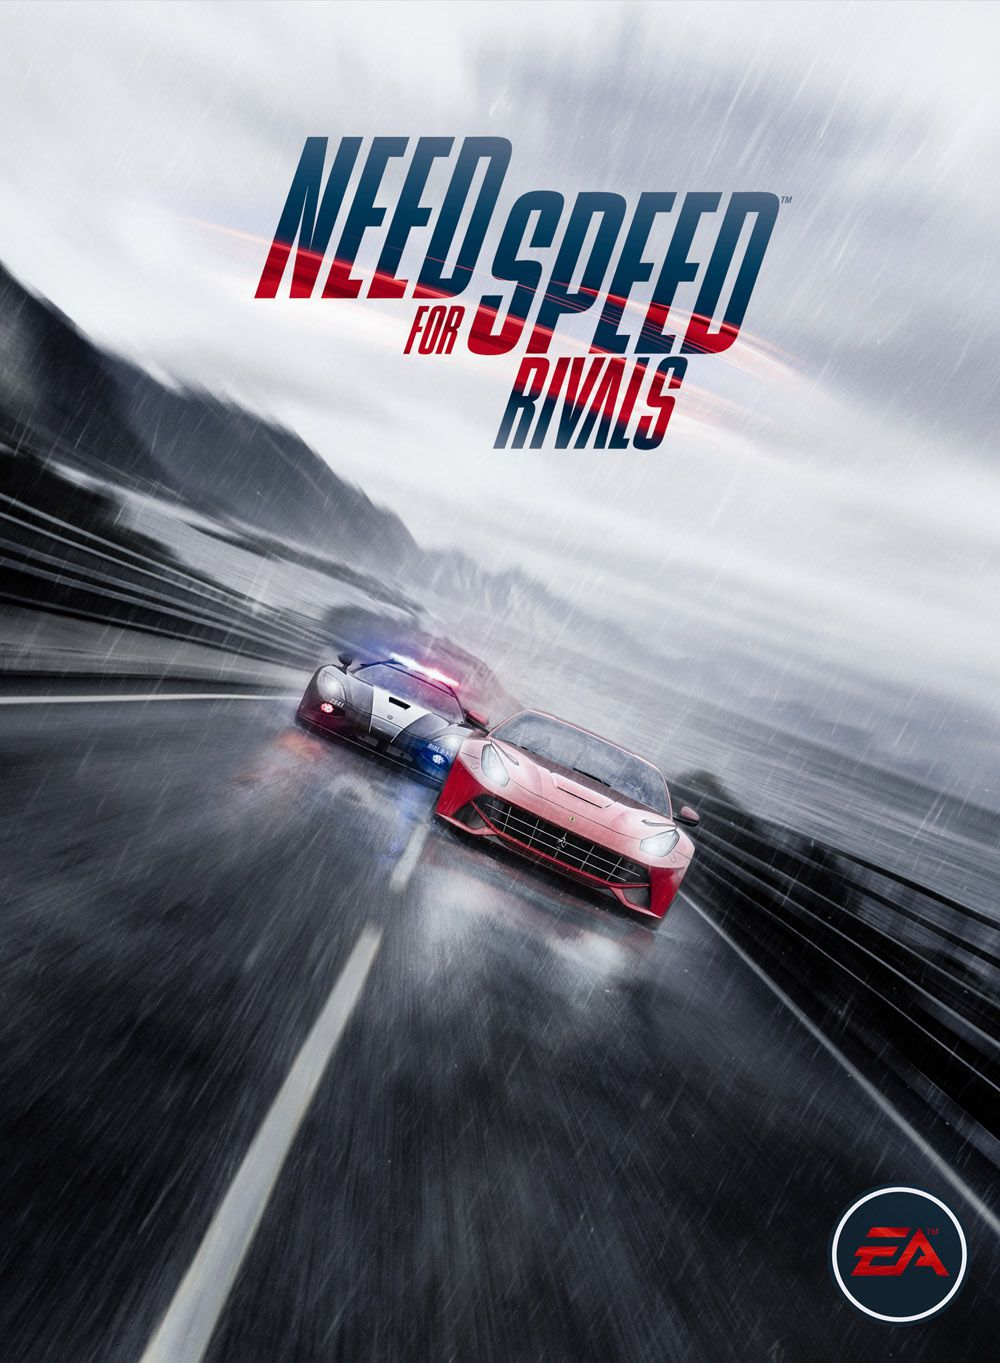 Need for Speed : Rivals (2013)  - Jeu vidéo streaming VF gratuit complet